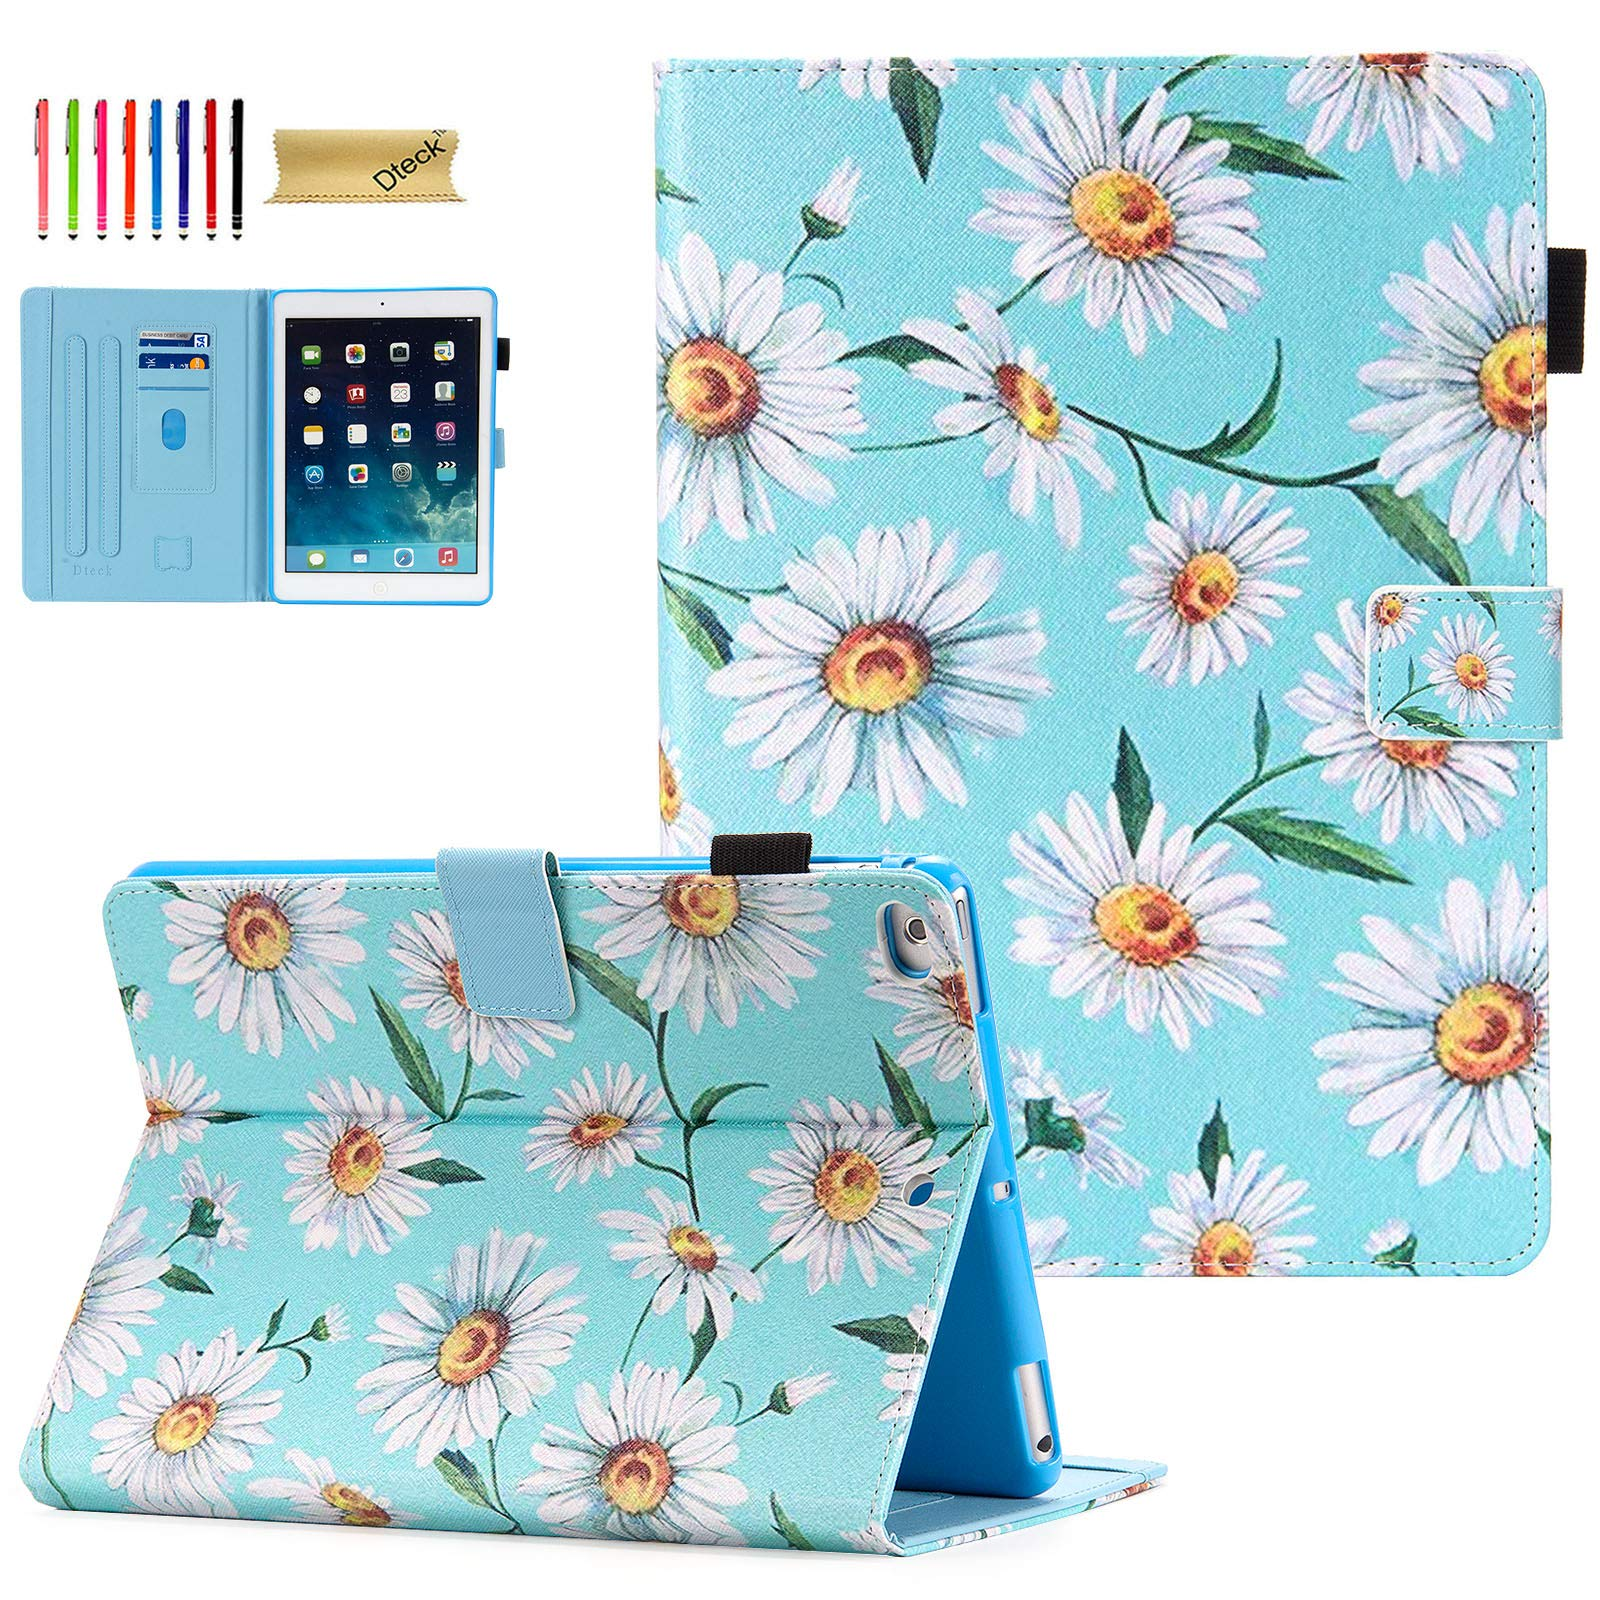 iPad 9.7 Case 2018/2017, iPad 6th/5th Gen Case with Pencil Holder, Dteck Premium Leather Folio Stand Case, Auto Wake/Sleep Magnetic Protective Cover for iPad 9.7 2018/2017, iPad Air 1/2, Daisy